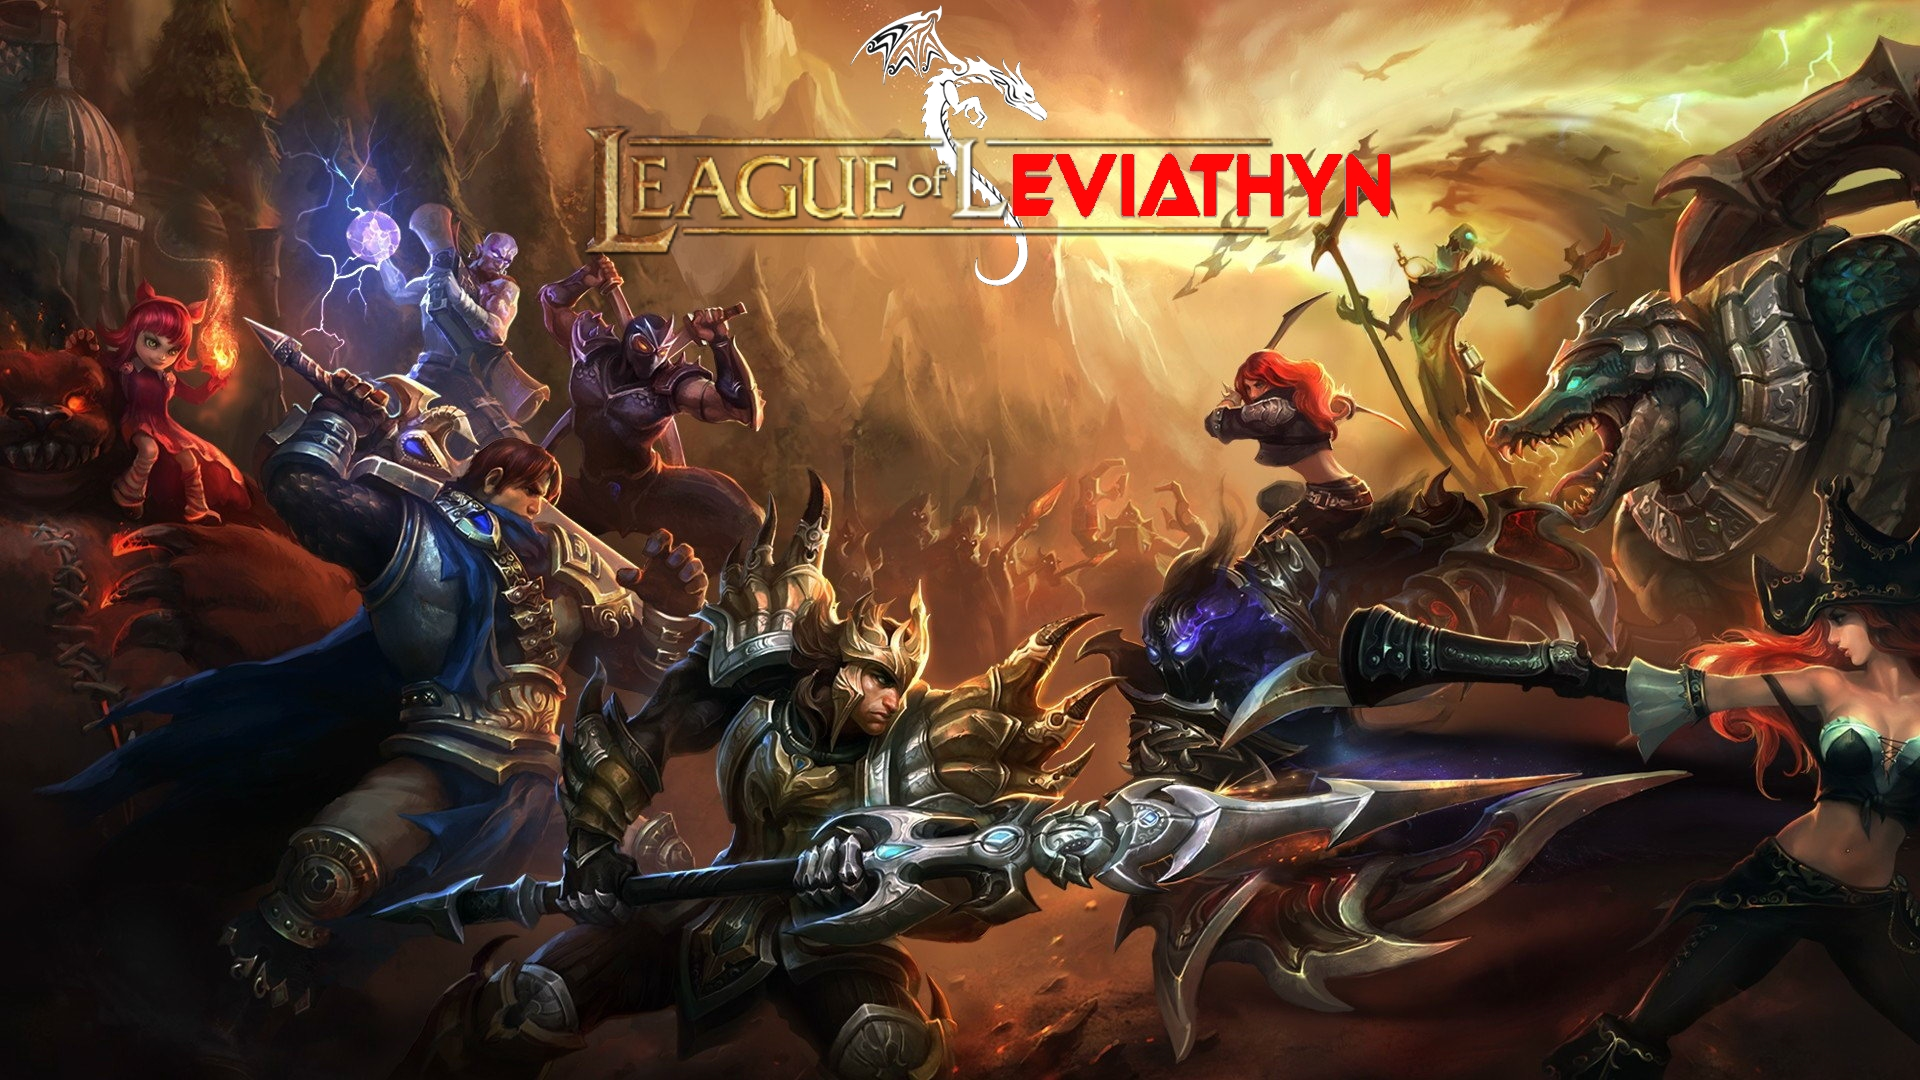 League of Leviathyn